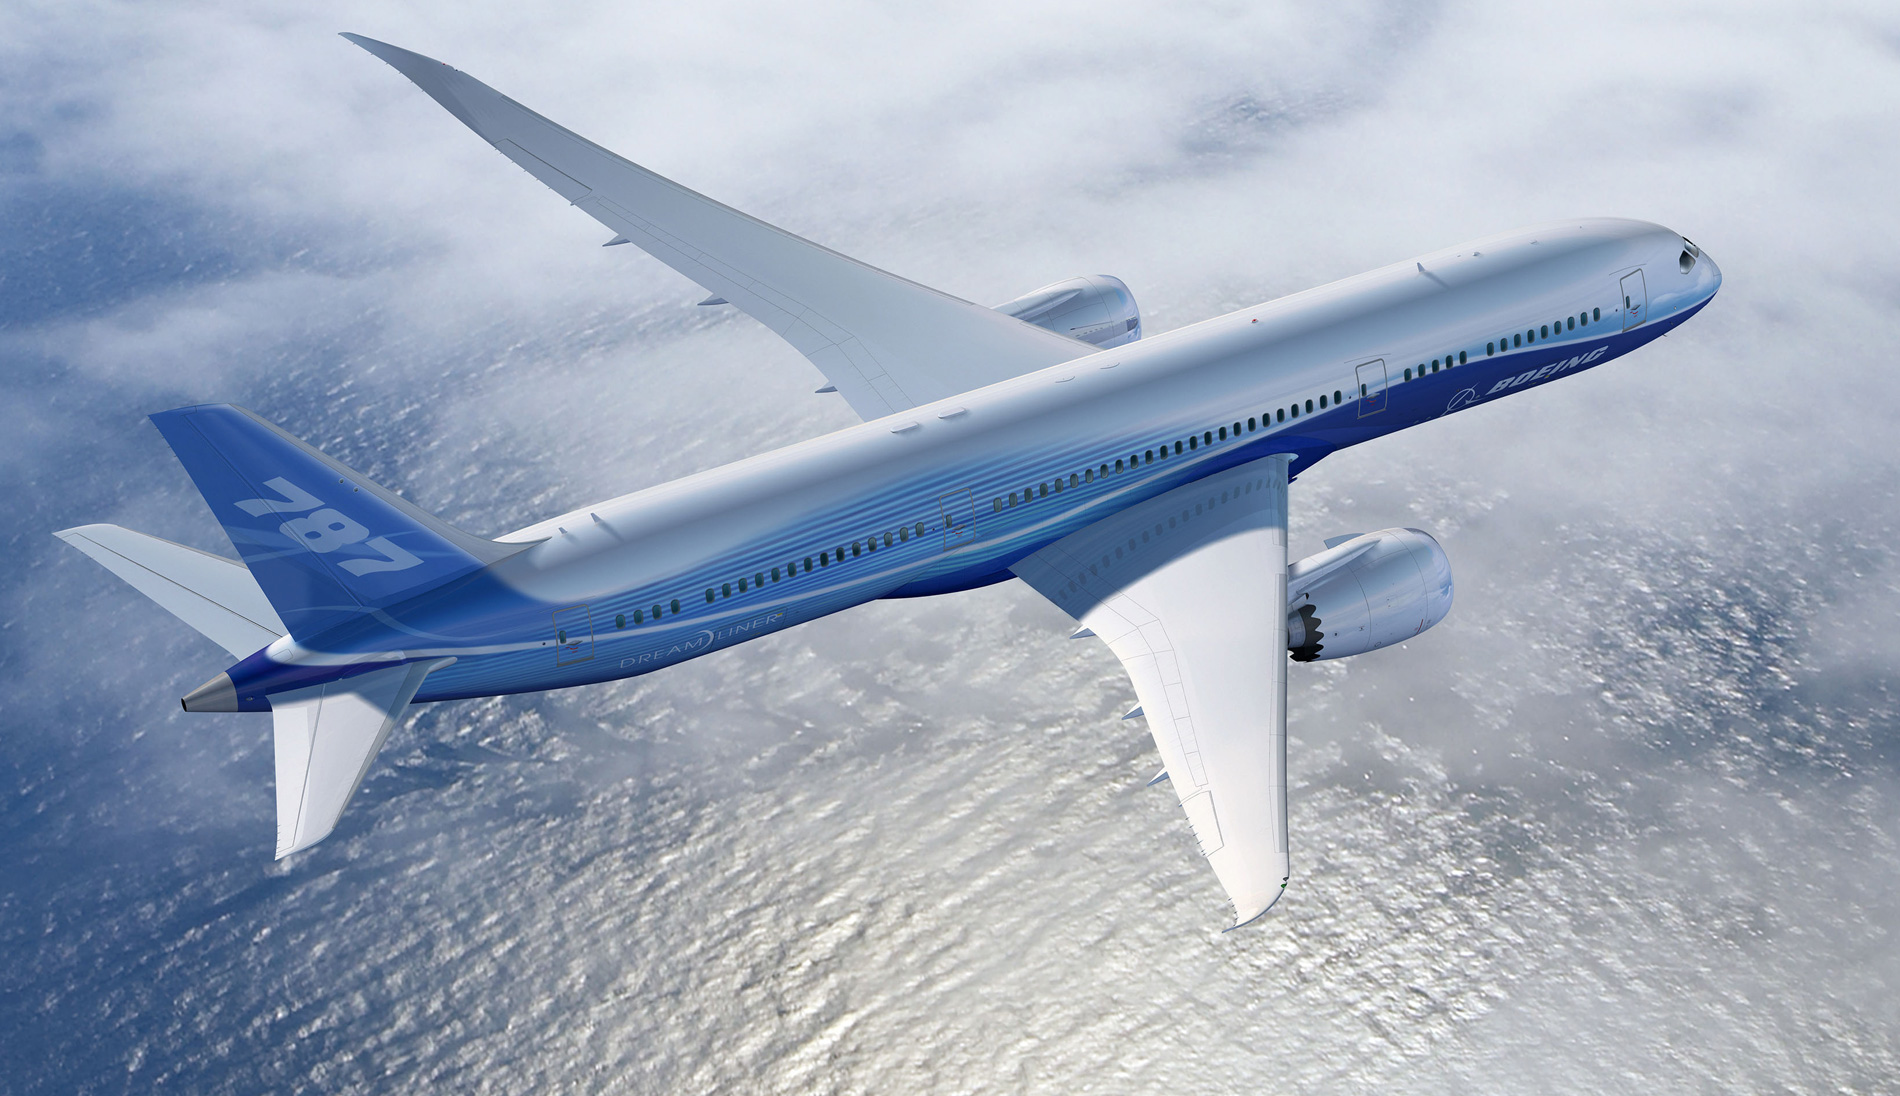 Future Passenger Planes What Will They Look Like In 2068 Cnn